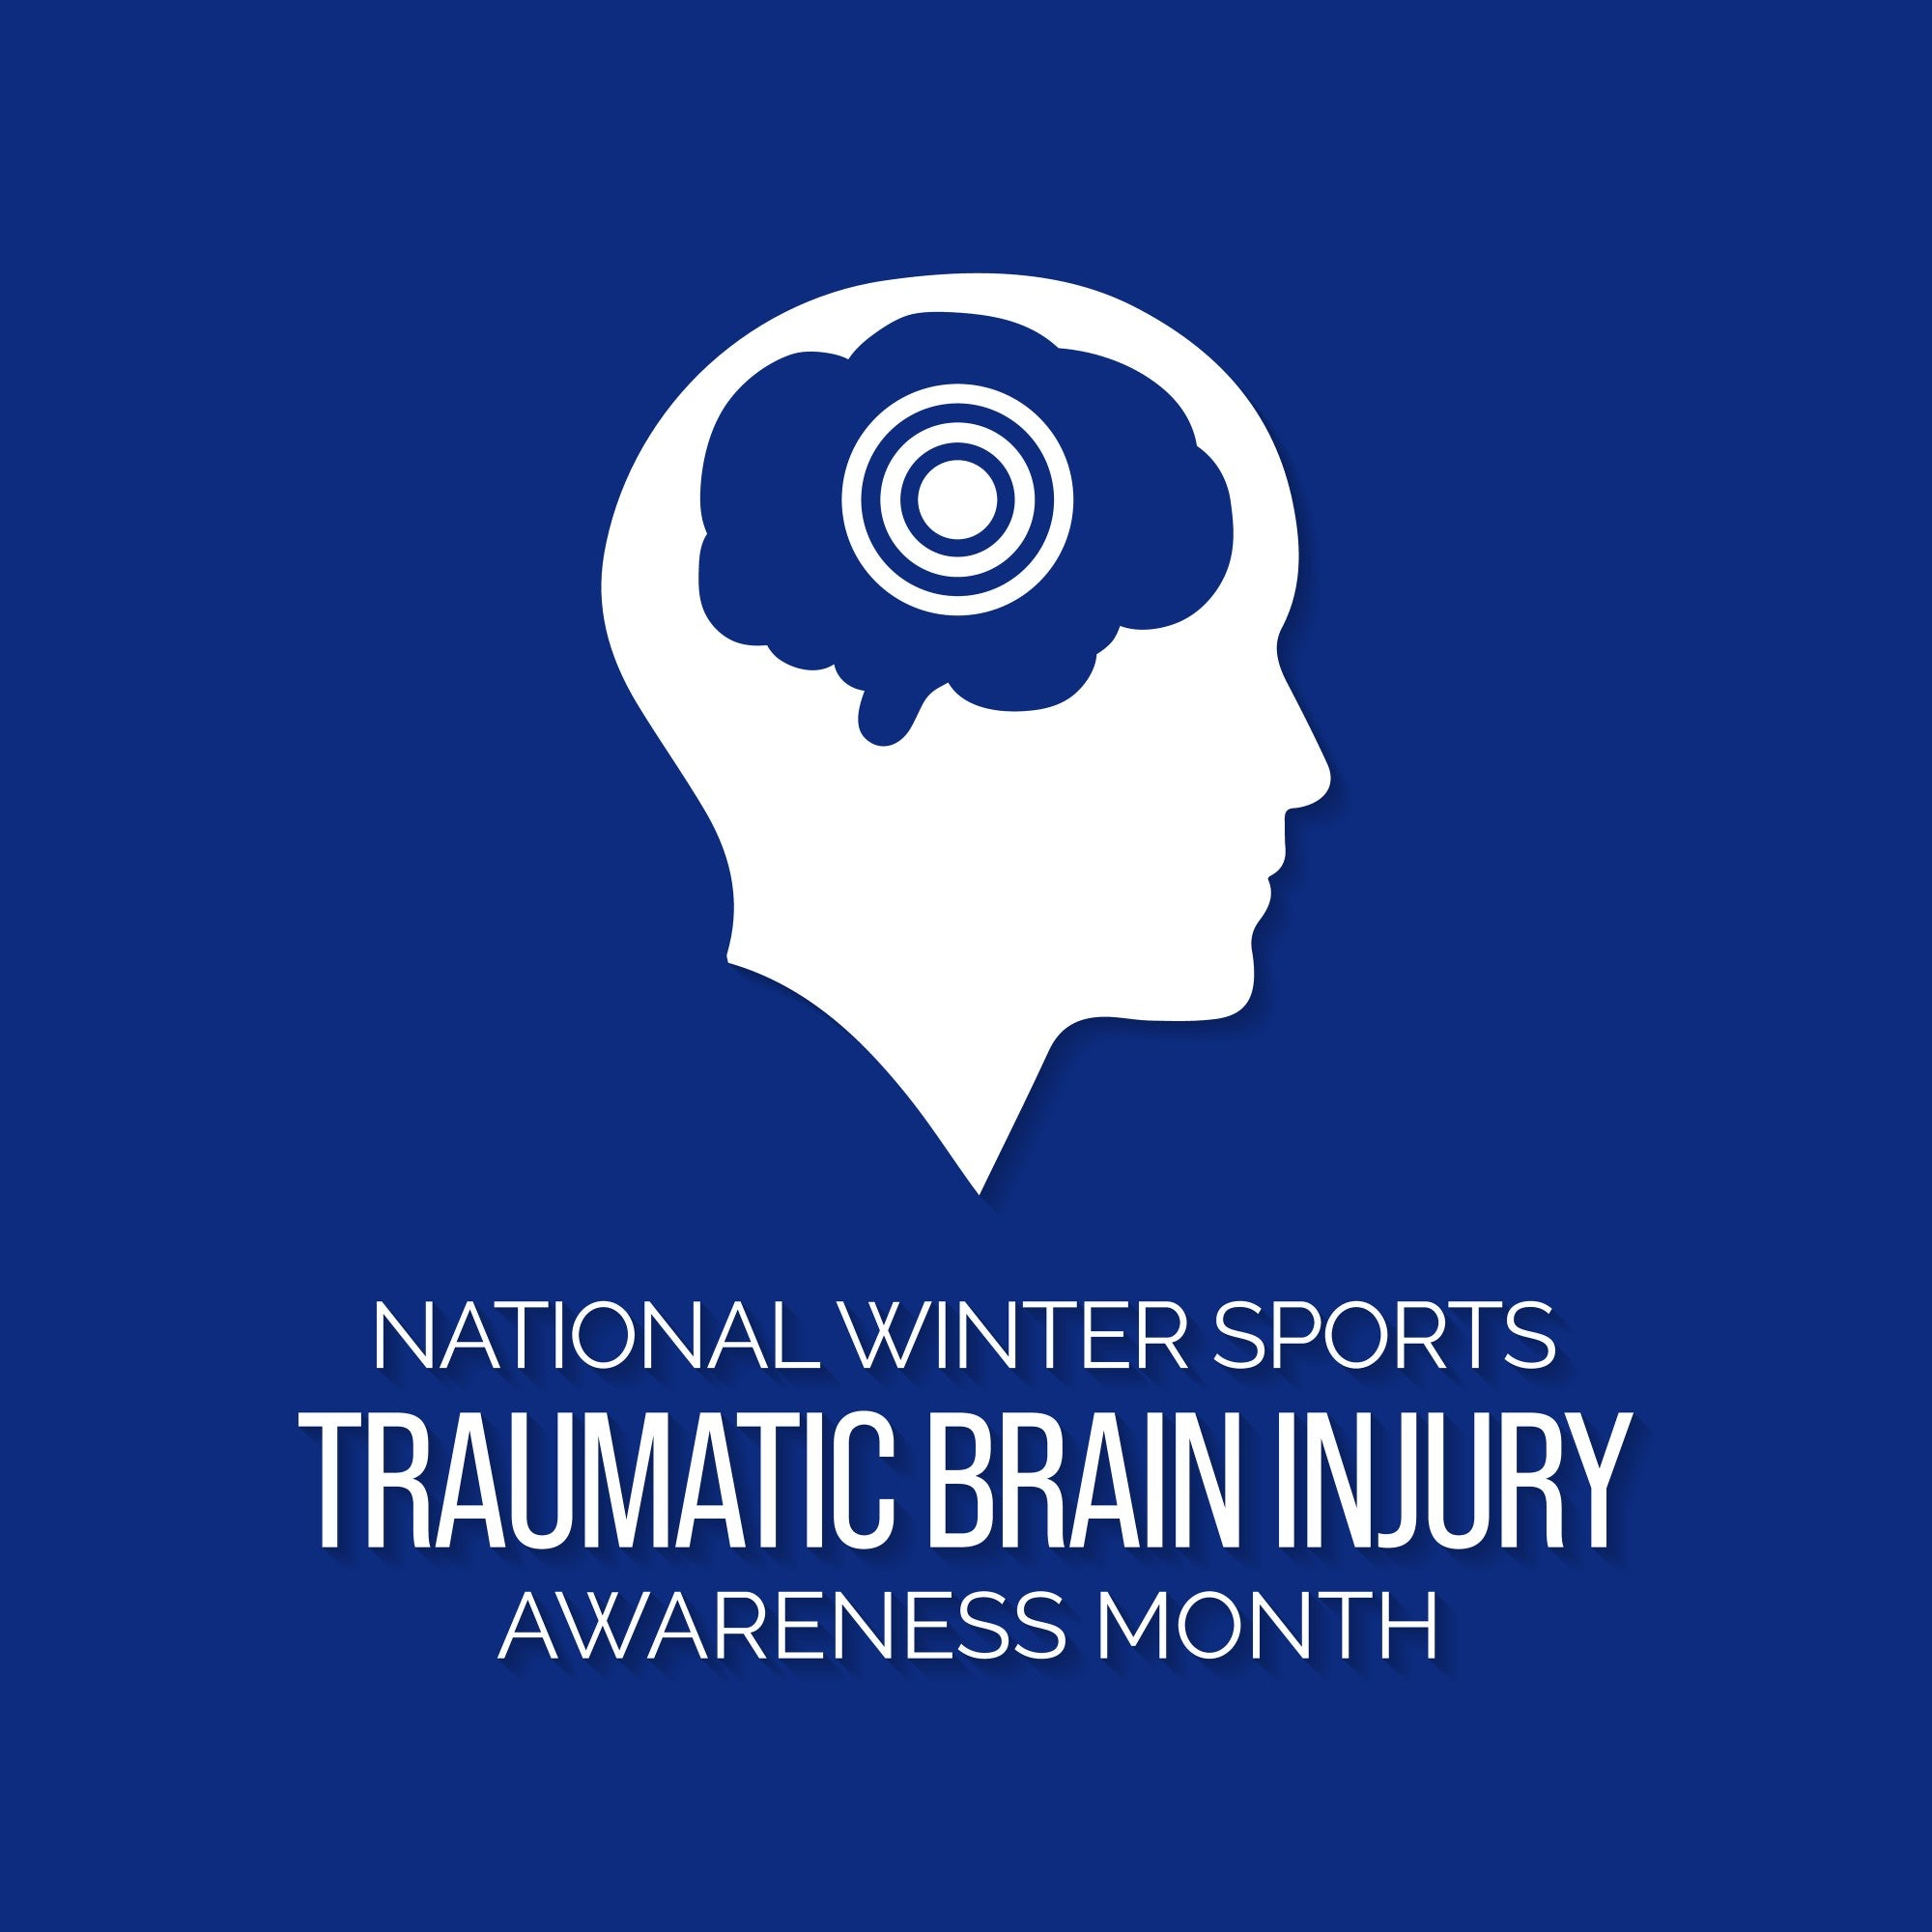 National Winter Sports Traumatic Brain Injury Month